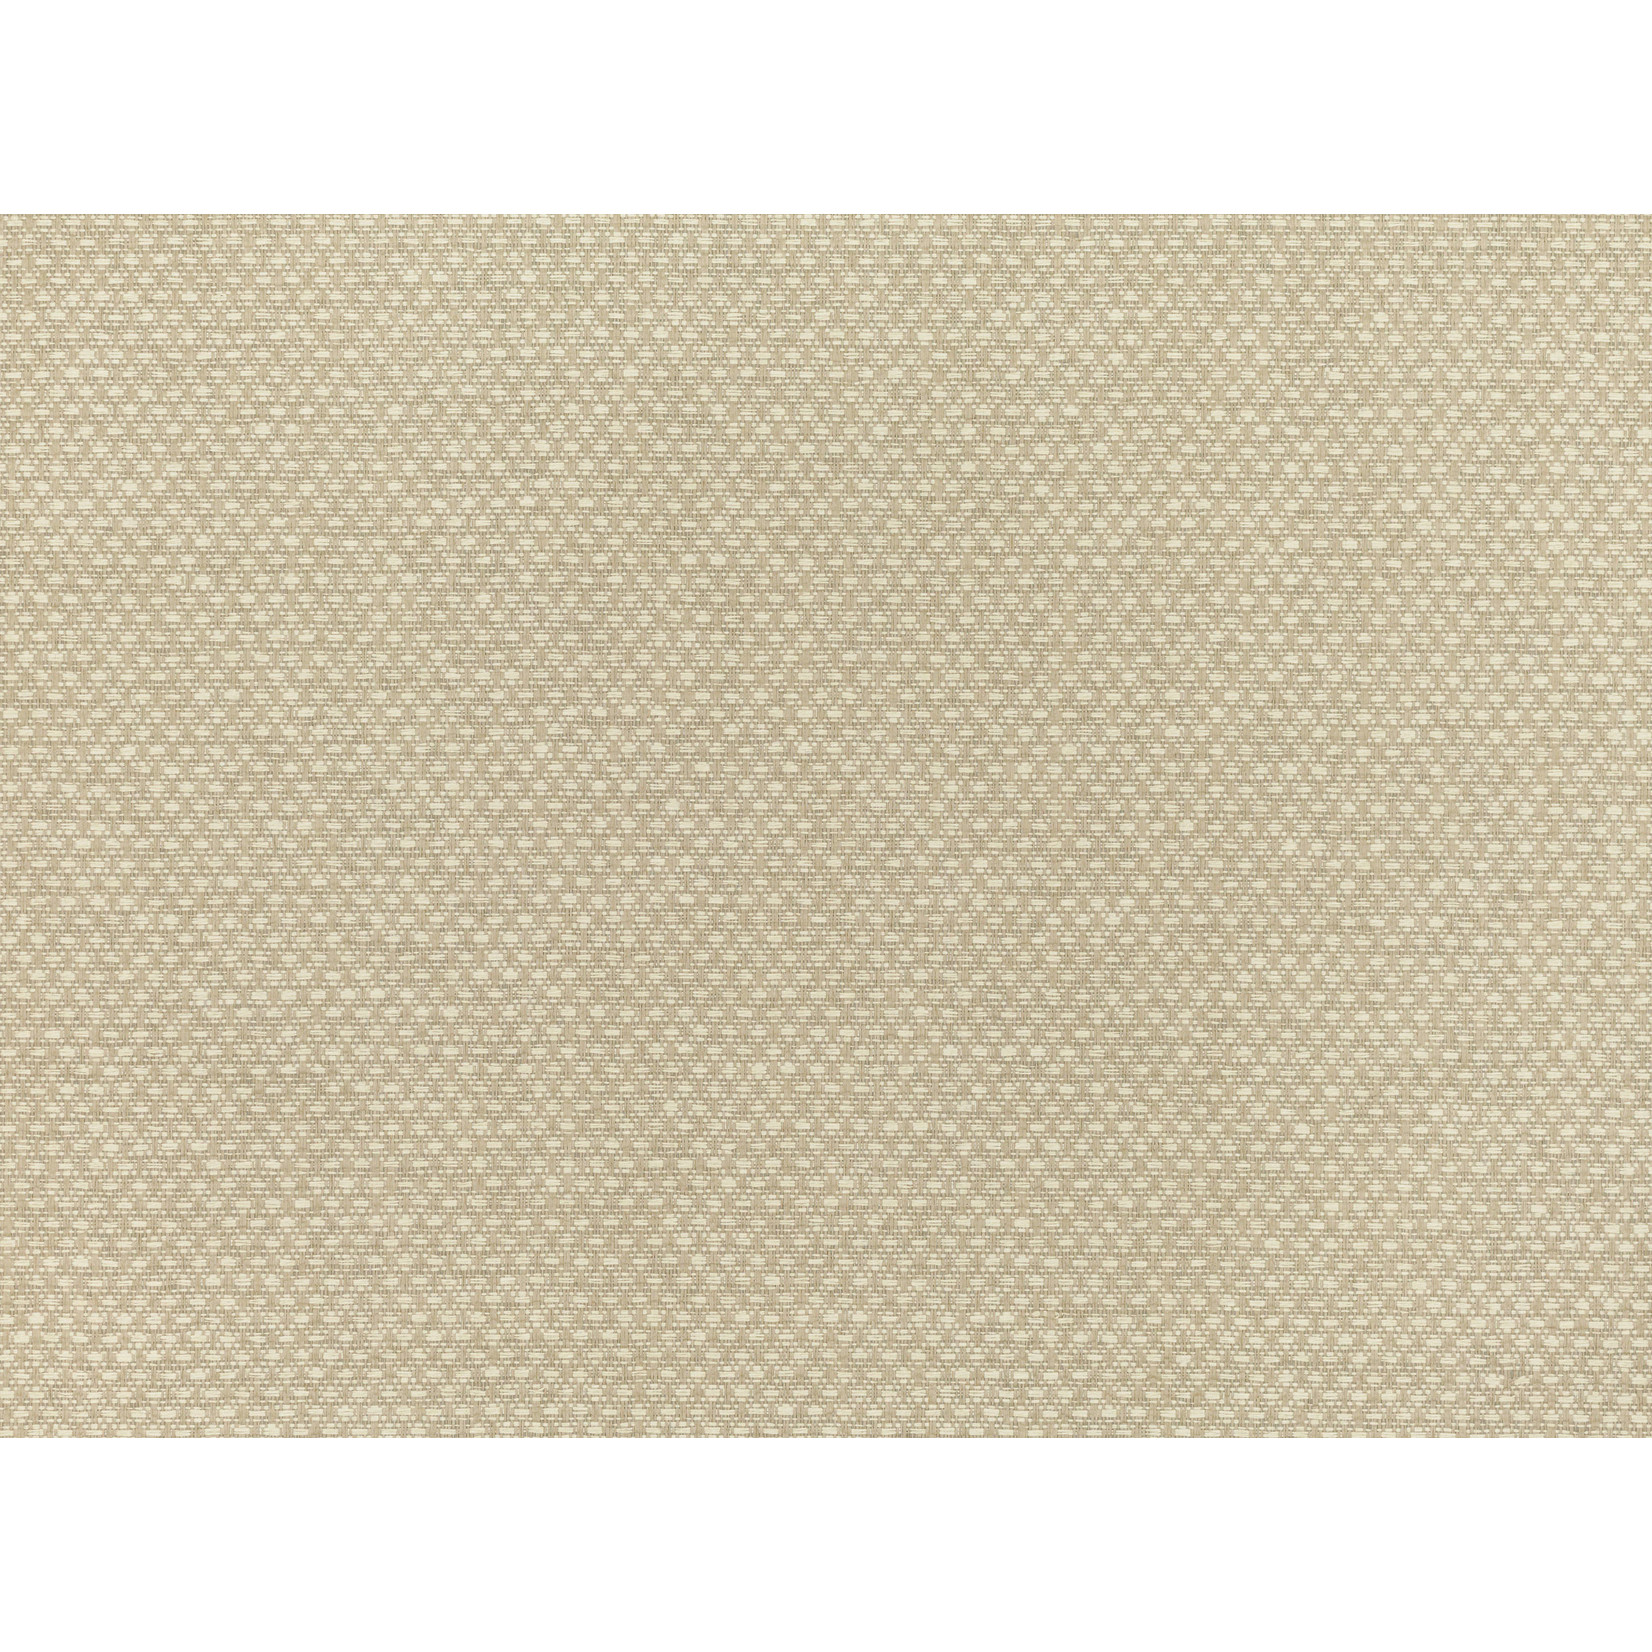 Mark Alexander Paperweave Handwoven Wallcoverings   Shifu Parchment